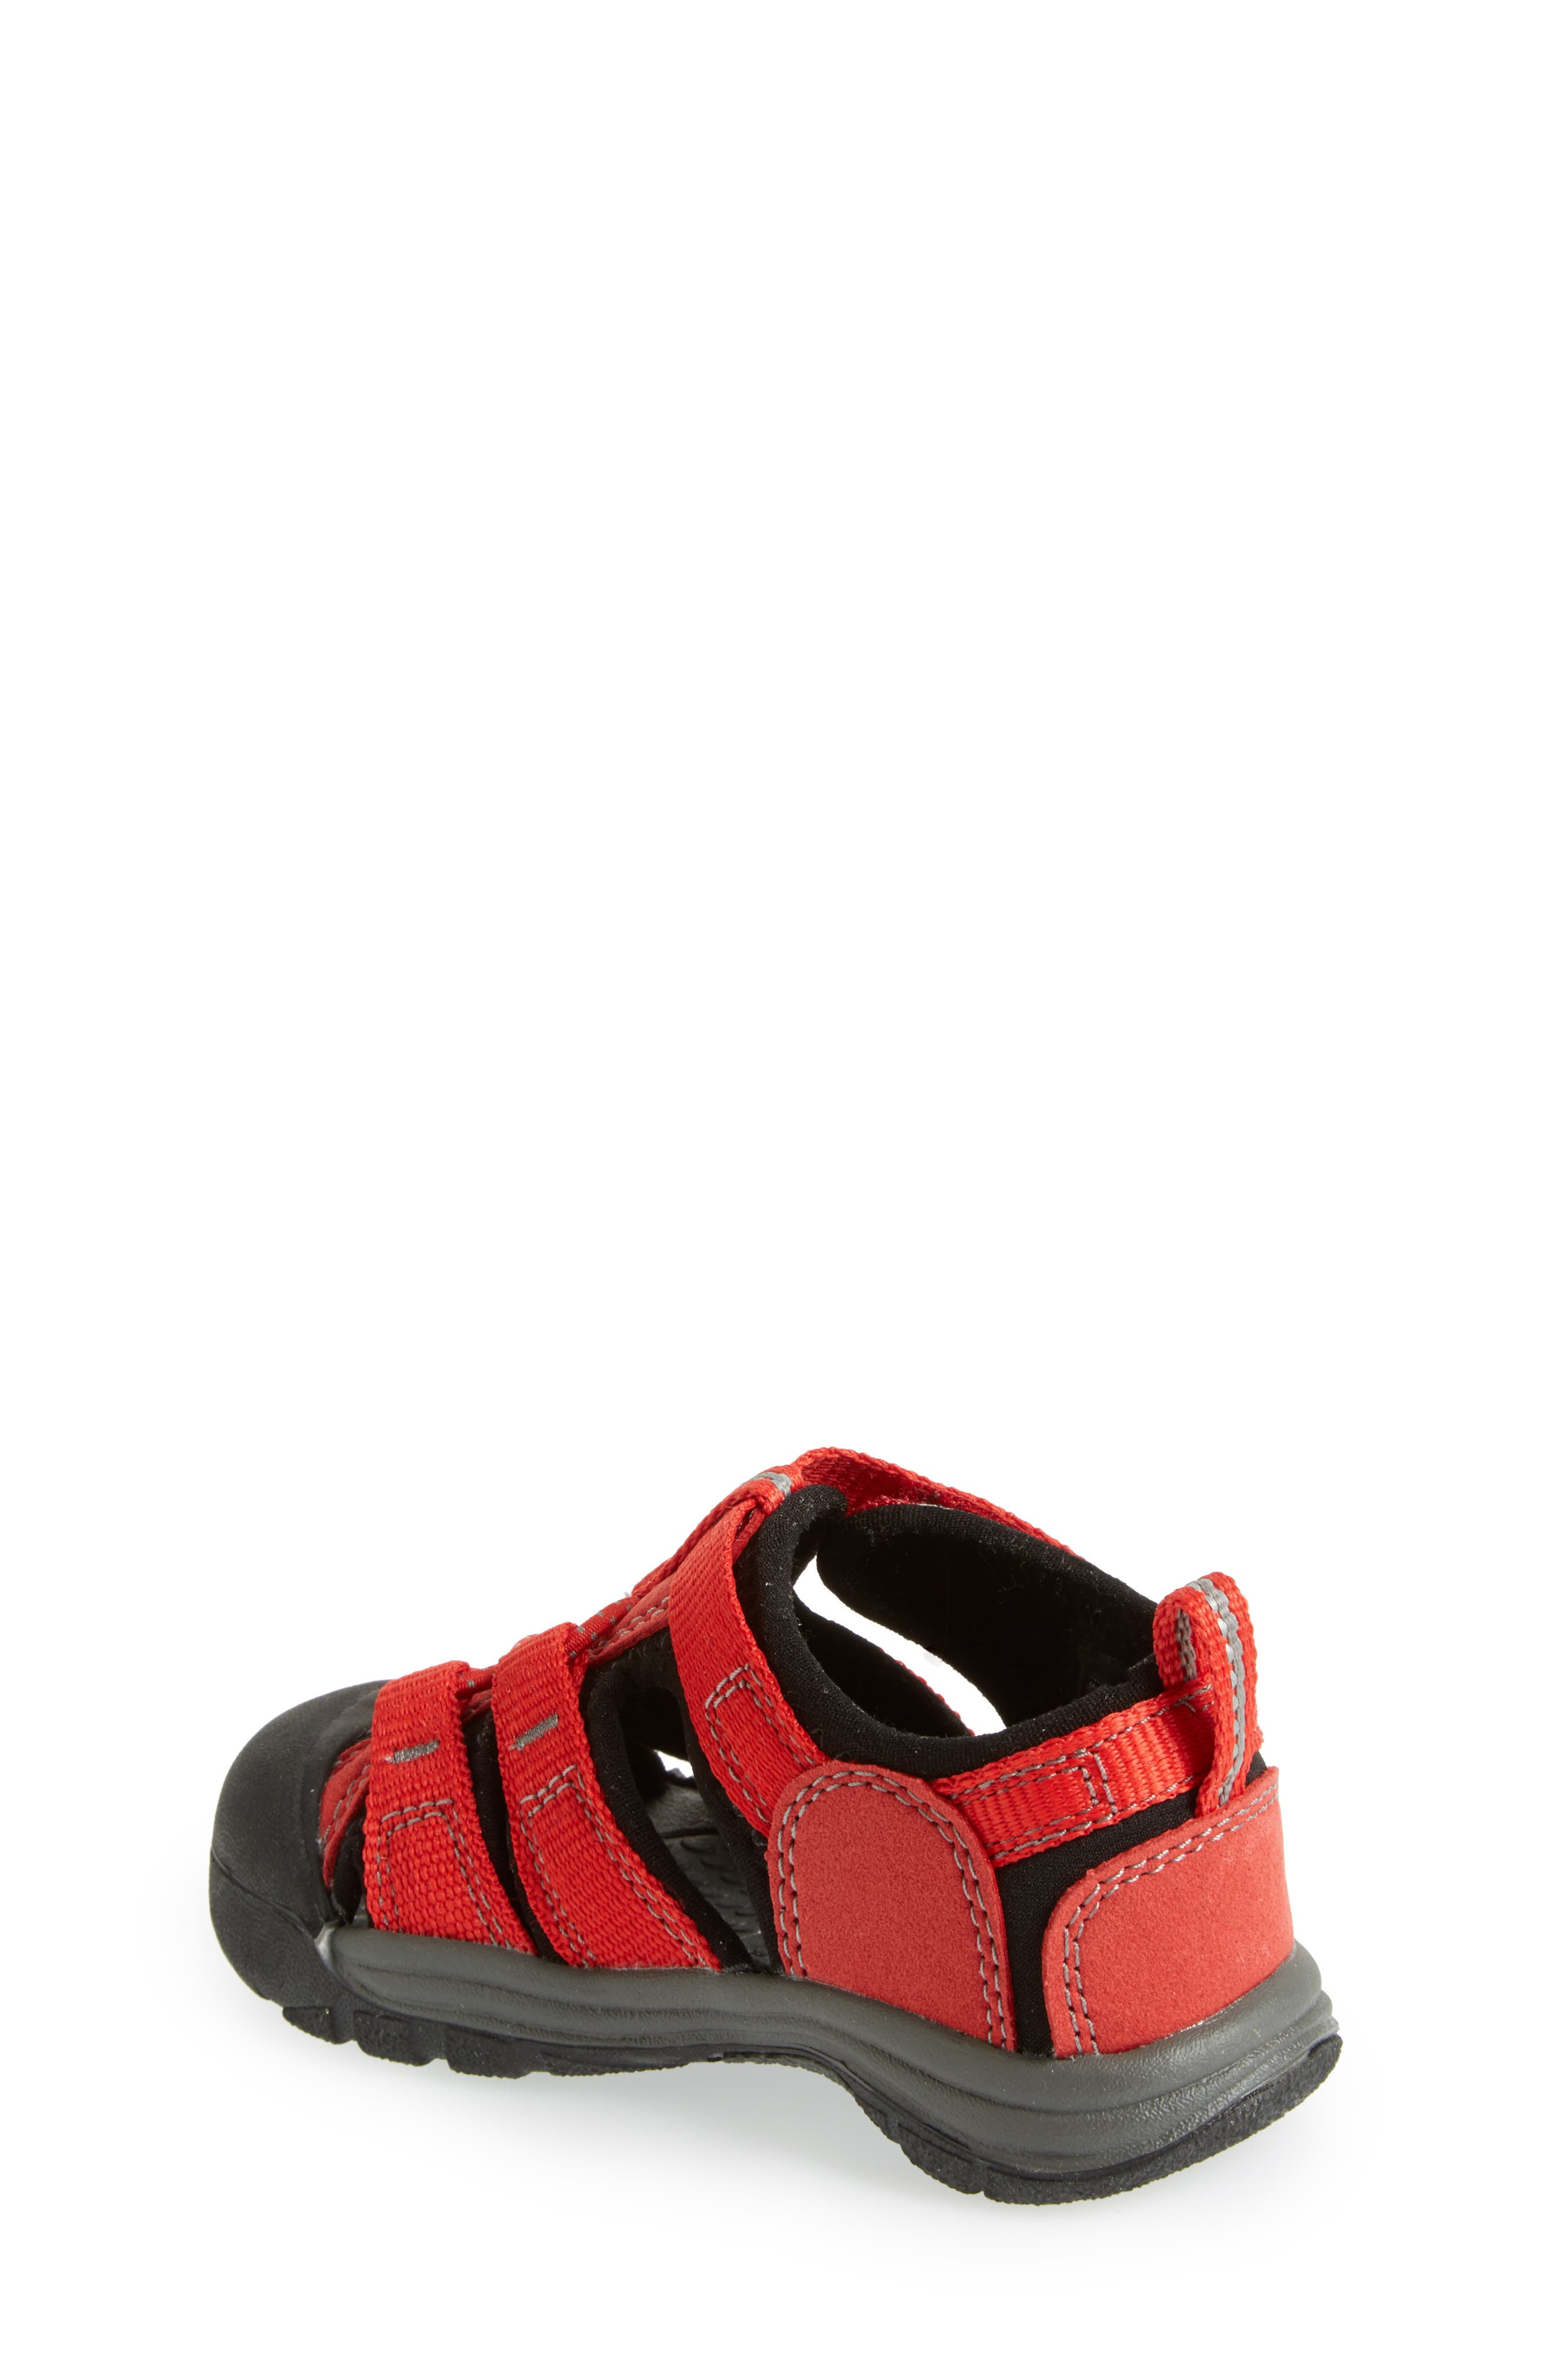 ,                             'Newport H2' Water Friendly Sandal,                             Alternate thumbnail 405, color,                             600